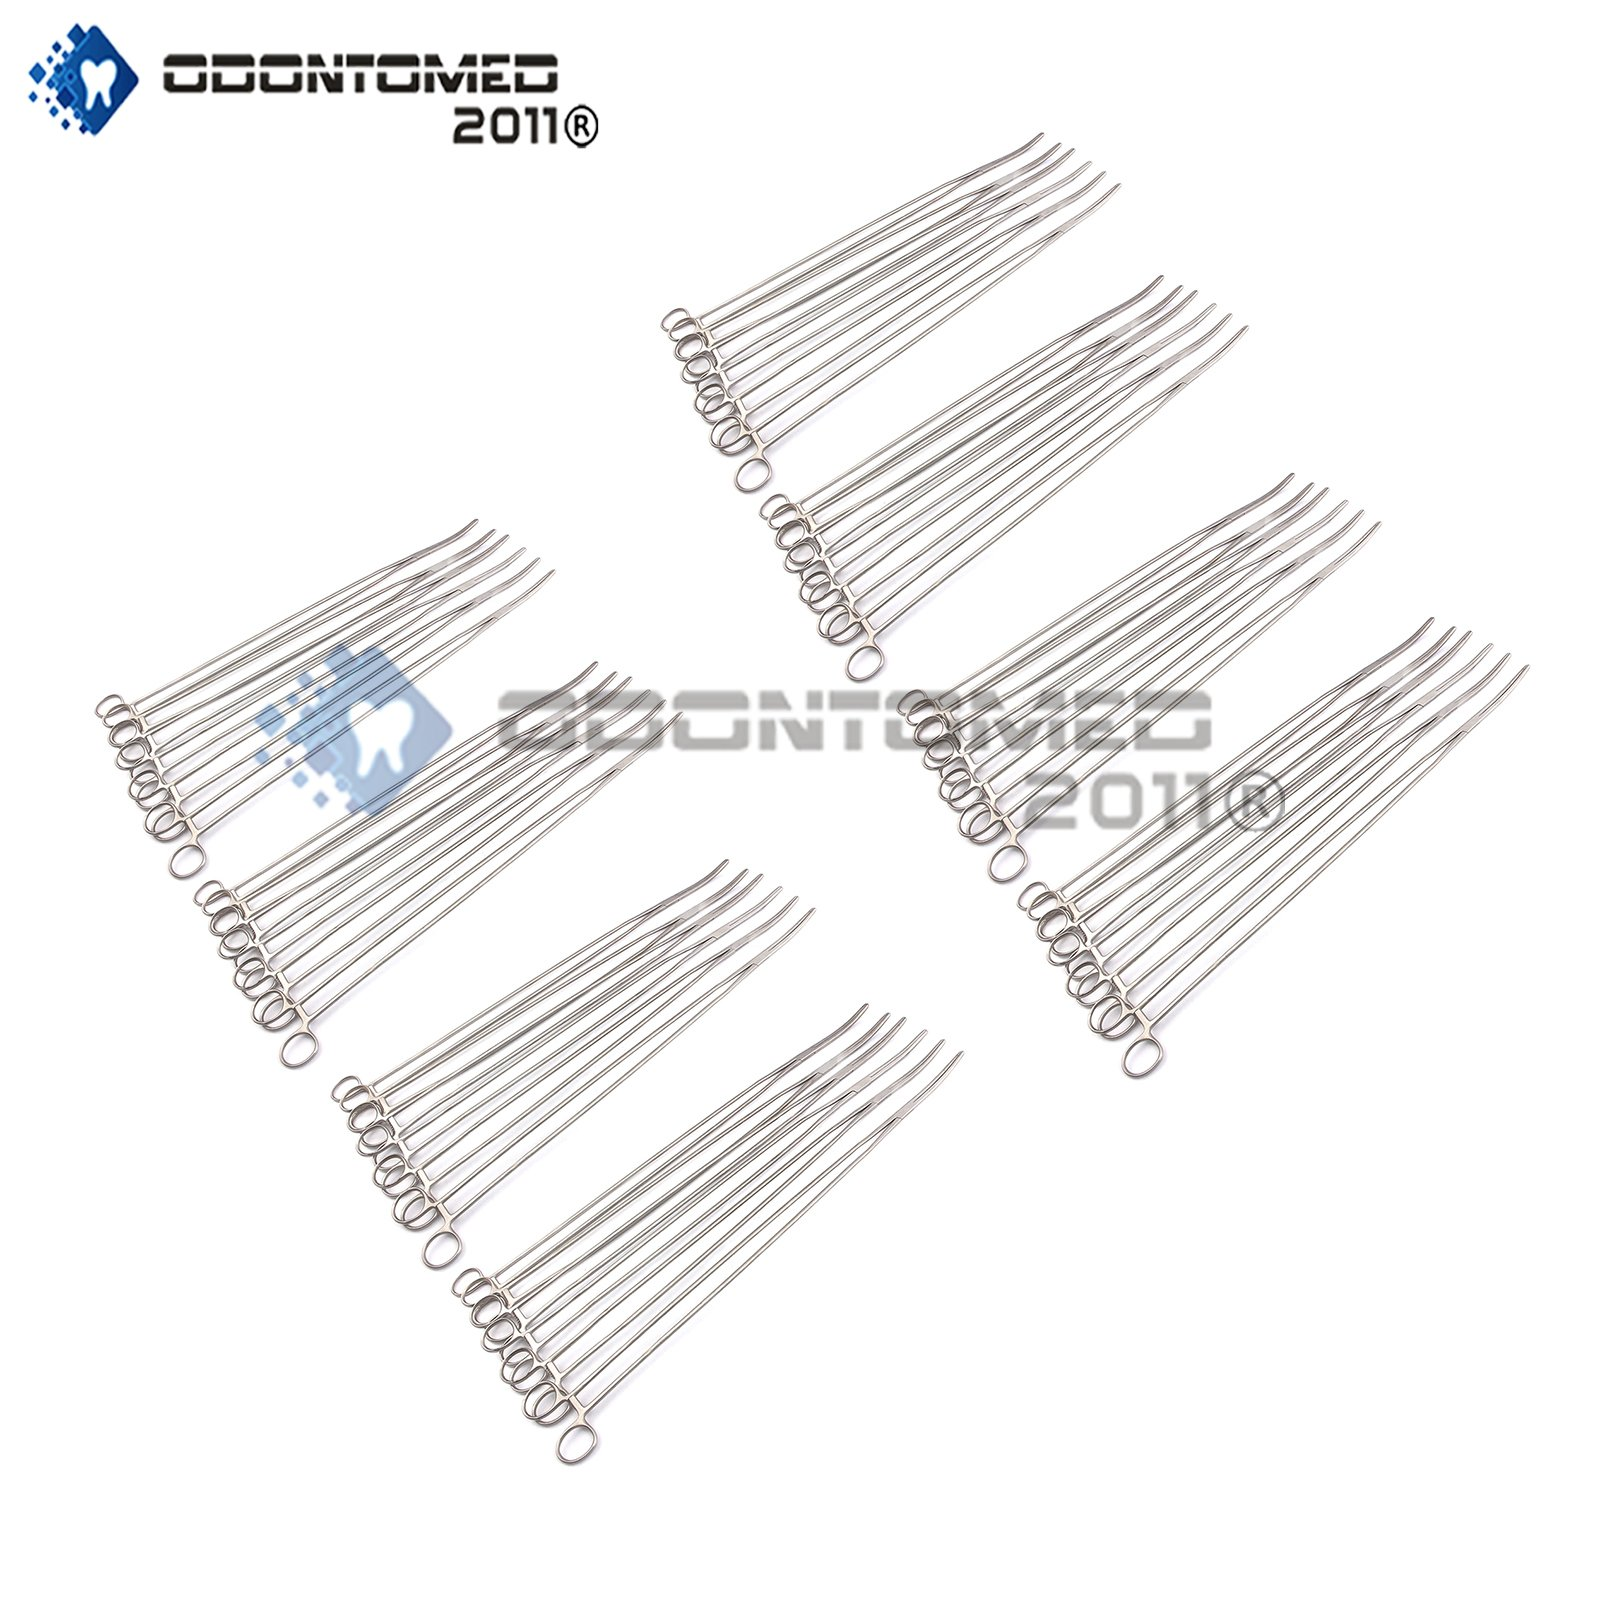 OdontoMed2011 Lot Of 50 Pieces Pean Hemostat Locking Curved 24'' Forceps Full Serrated Stainless Steel by ODONTOMED